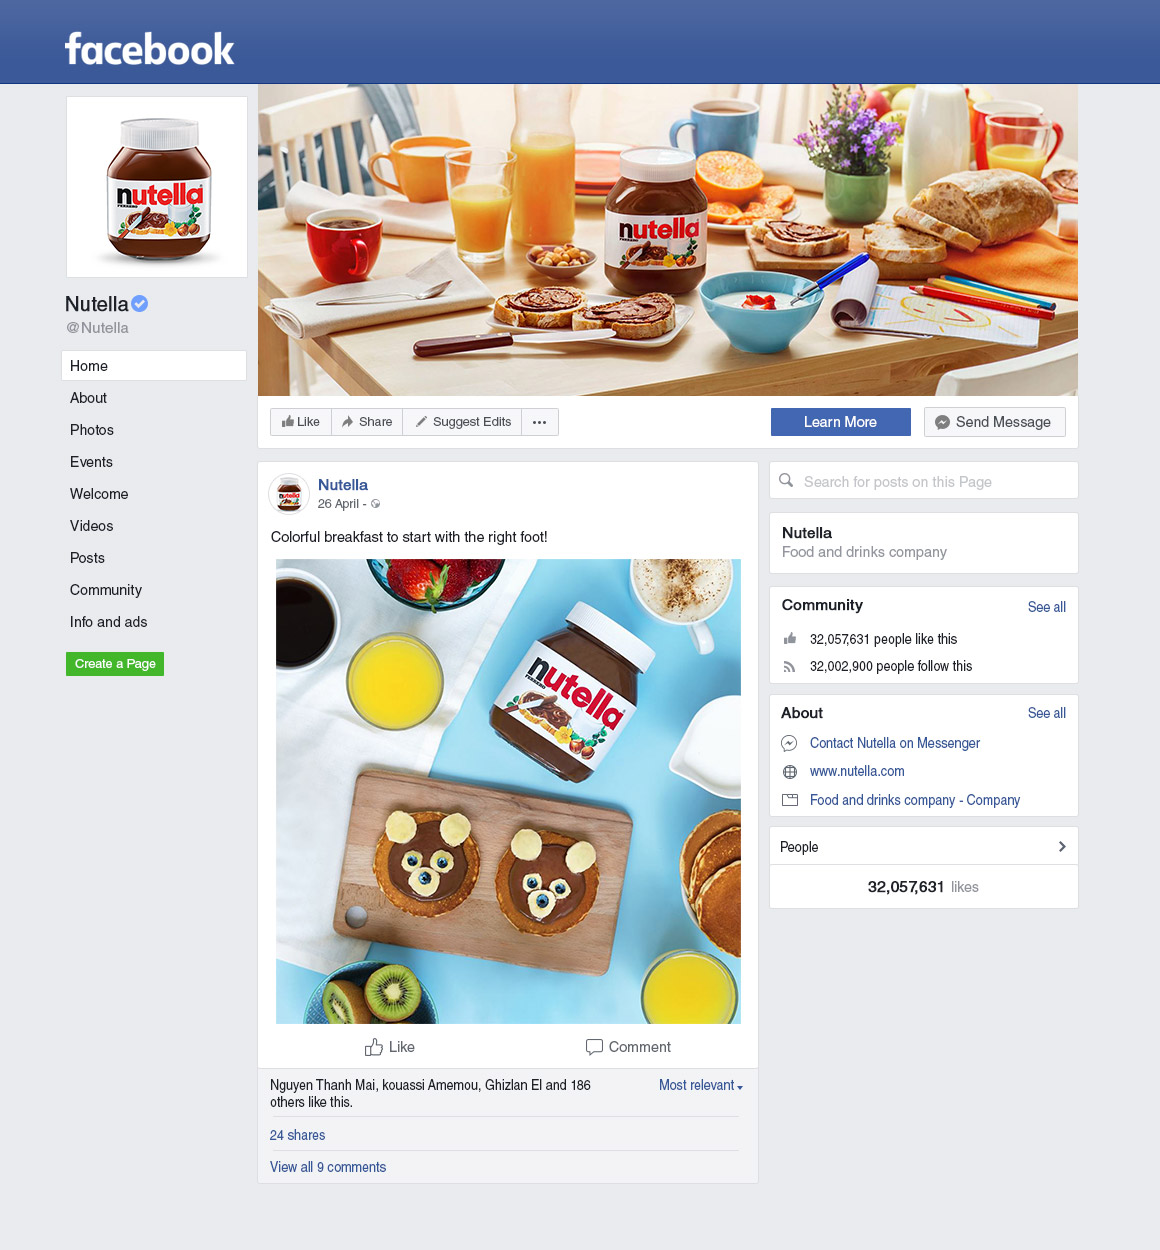 New-Facebook-Business-Page-Social-Media-Mockup-PSD-Example